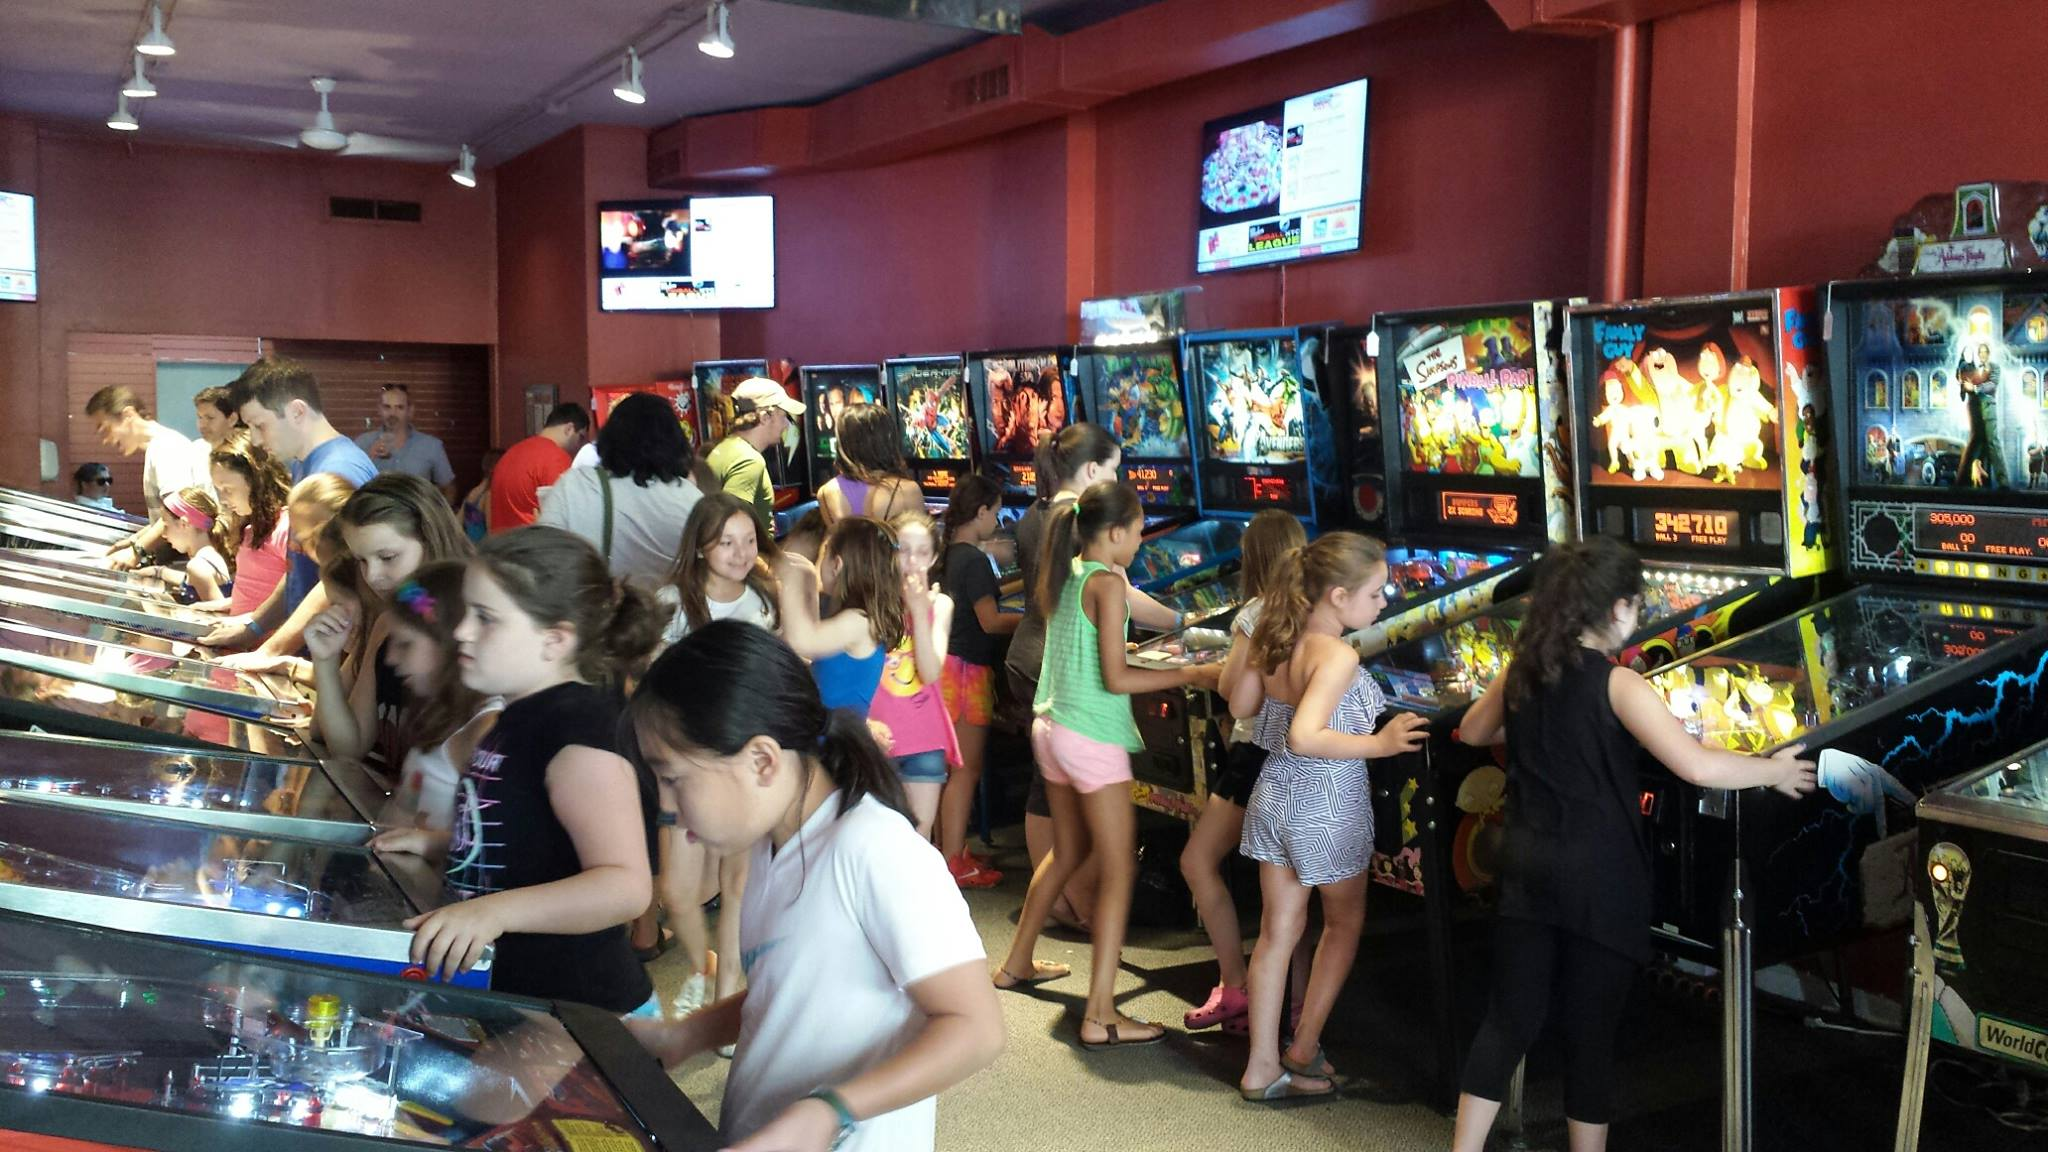 These kids today ... they enjoy pinball!